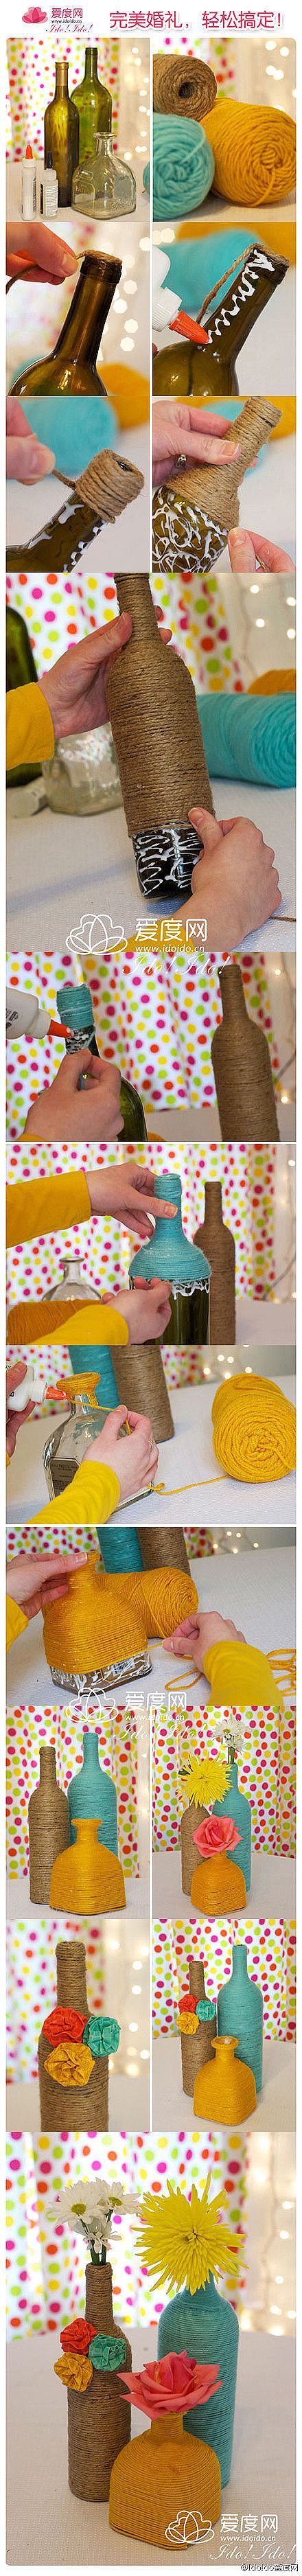 yarn bottles - natural color is very nautical. Would look good on a mantel, hearth or bookcase.